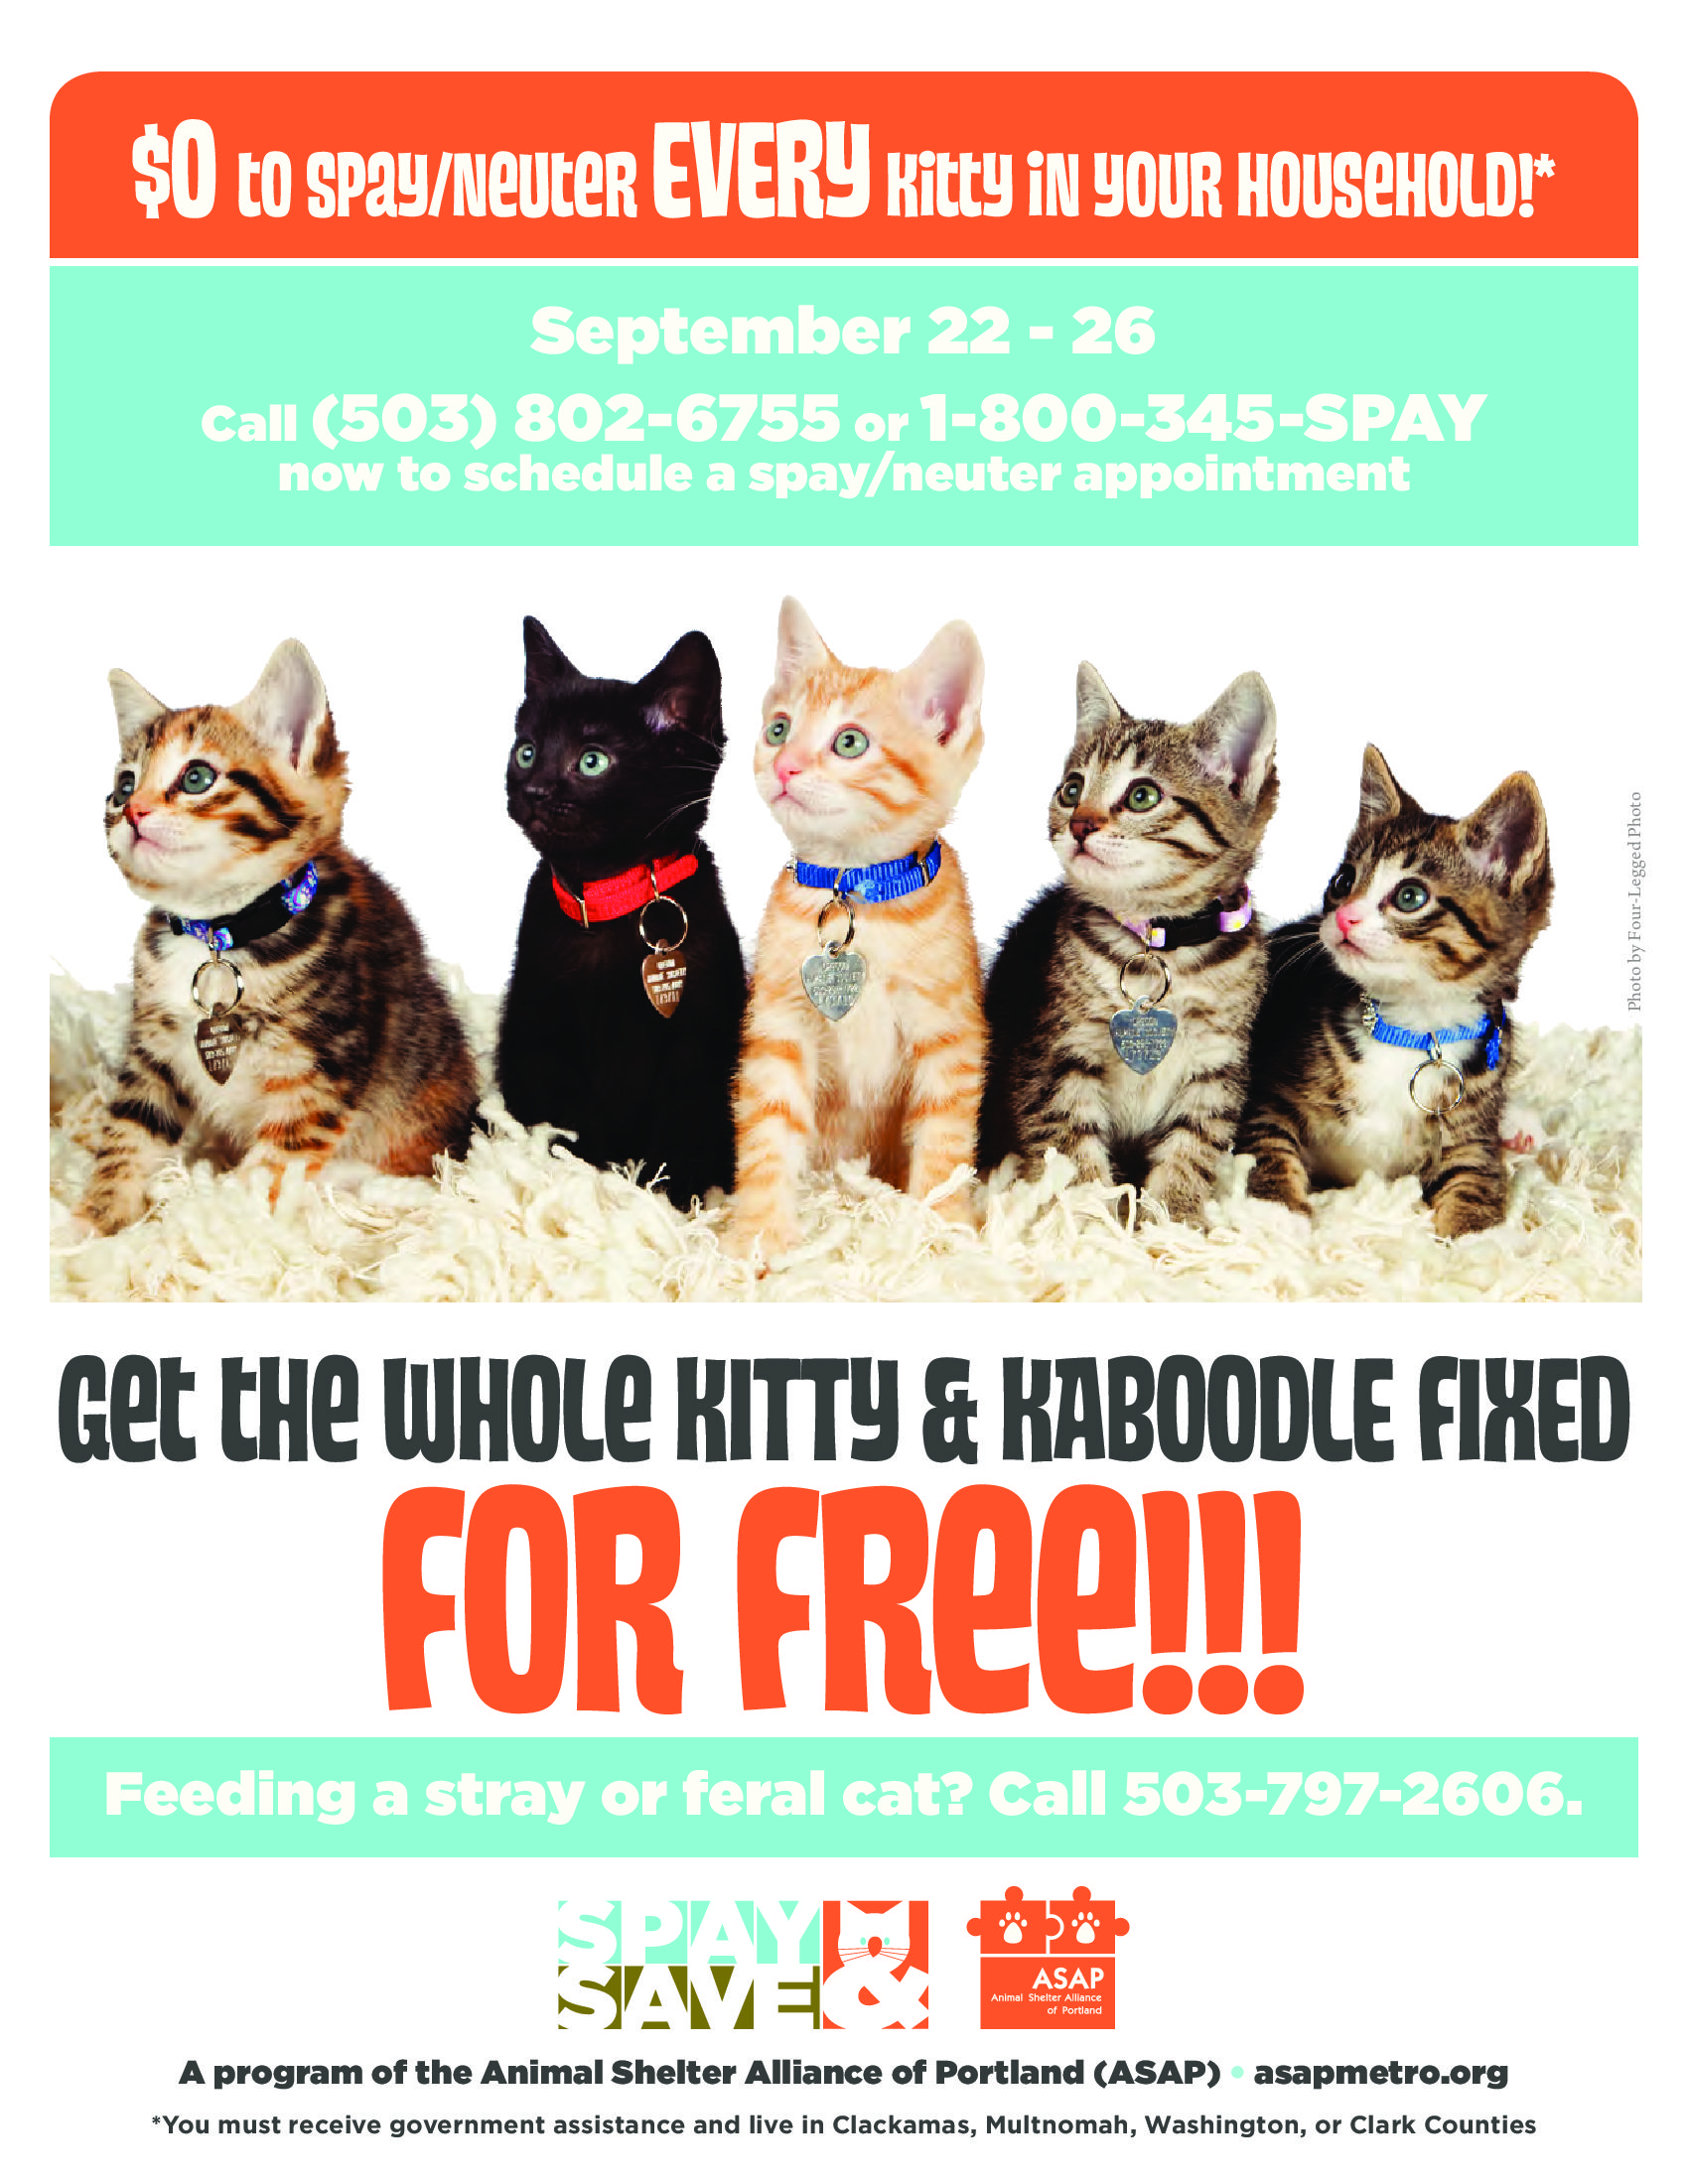 It's that time get your cats/kittens fixed for FREE